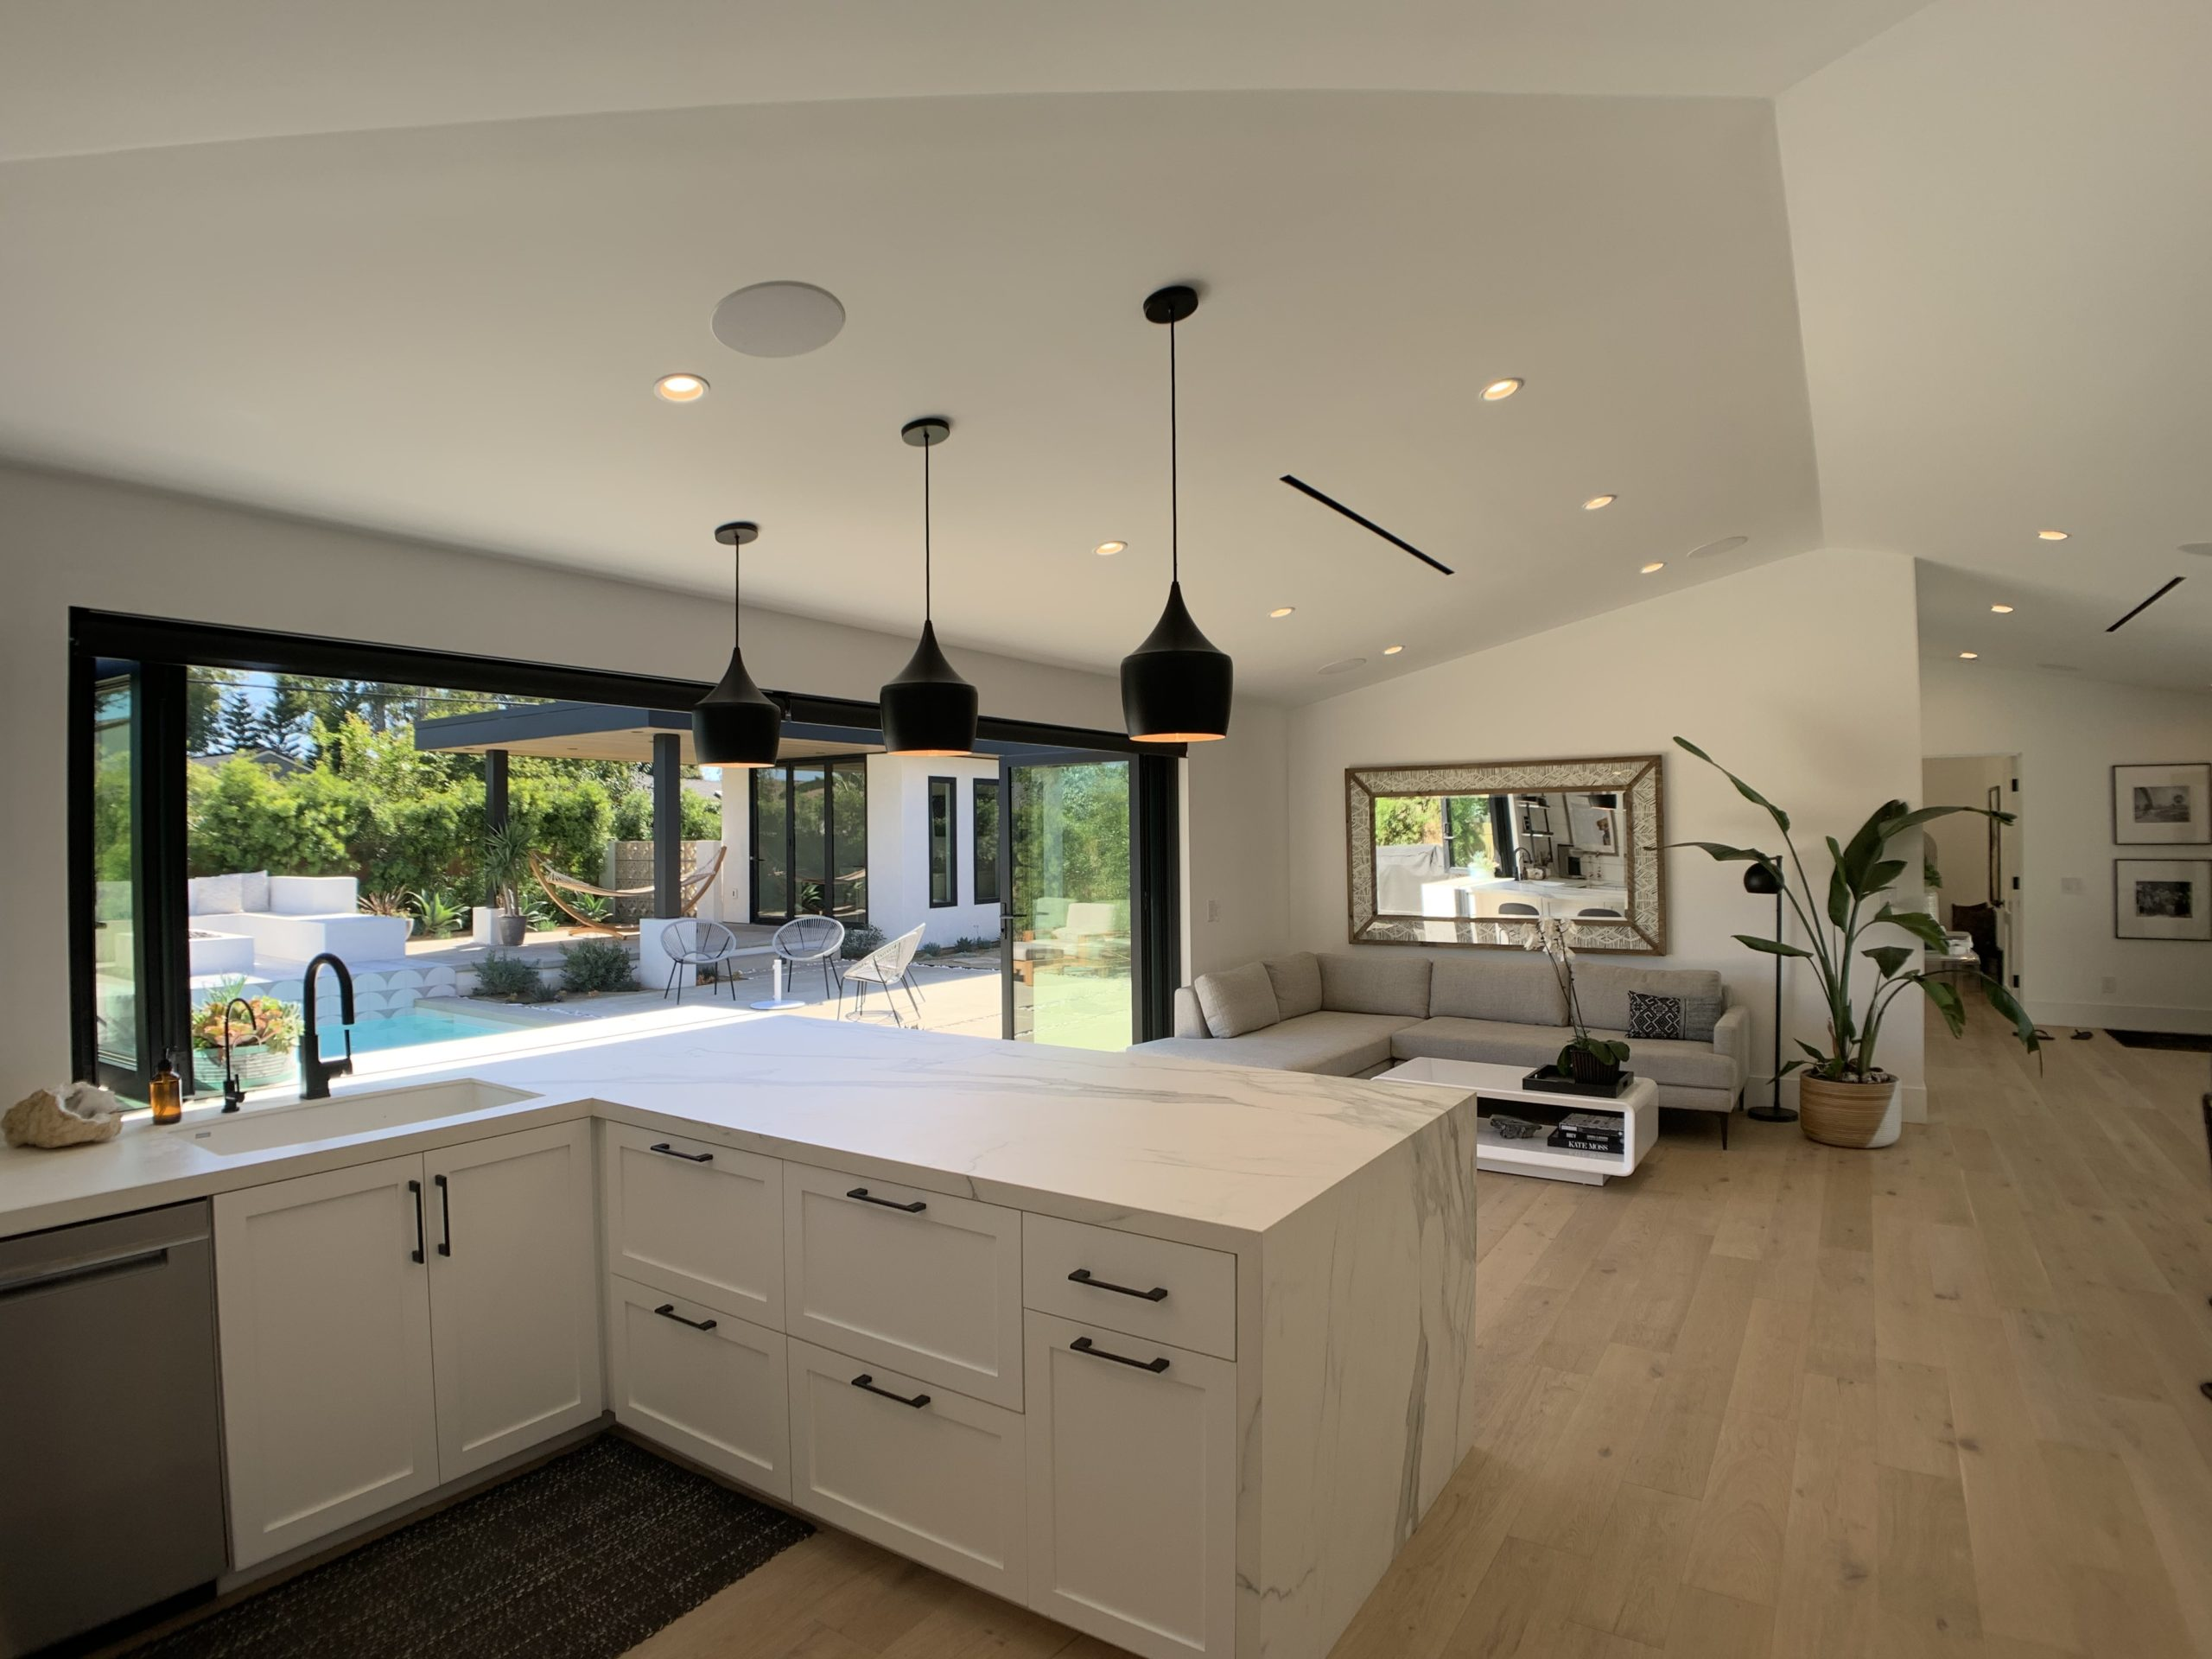 Kitchen and pool - second angle